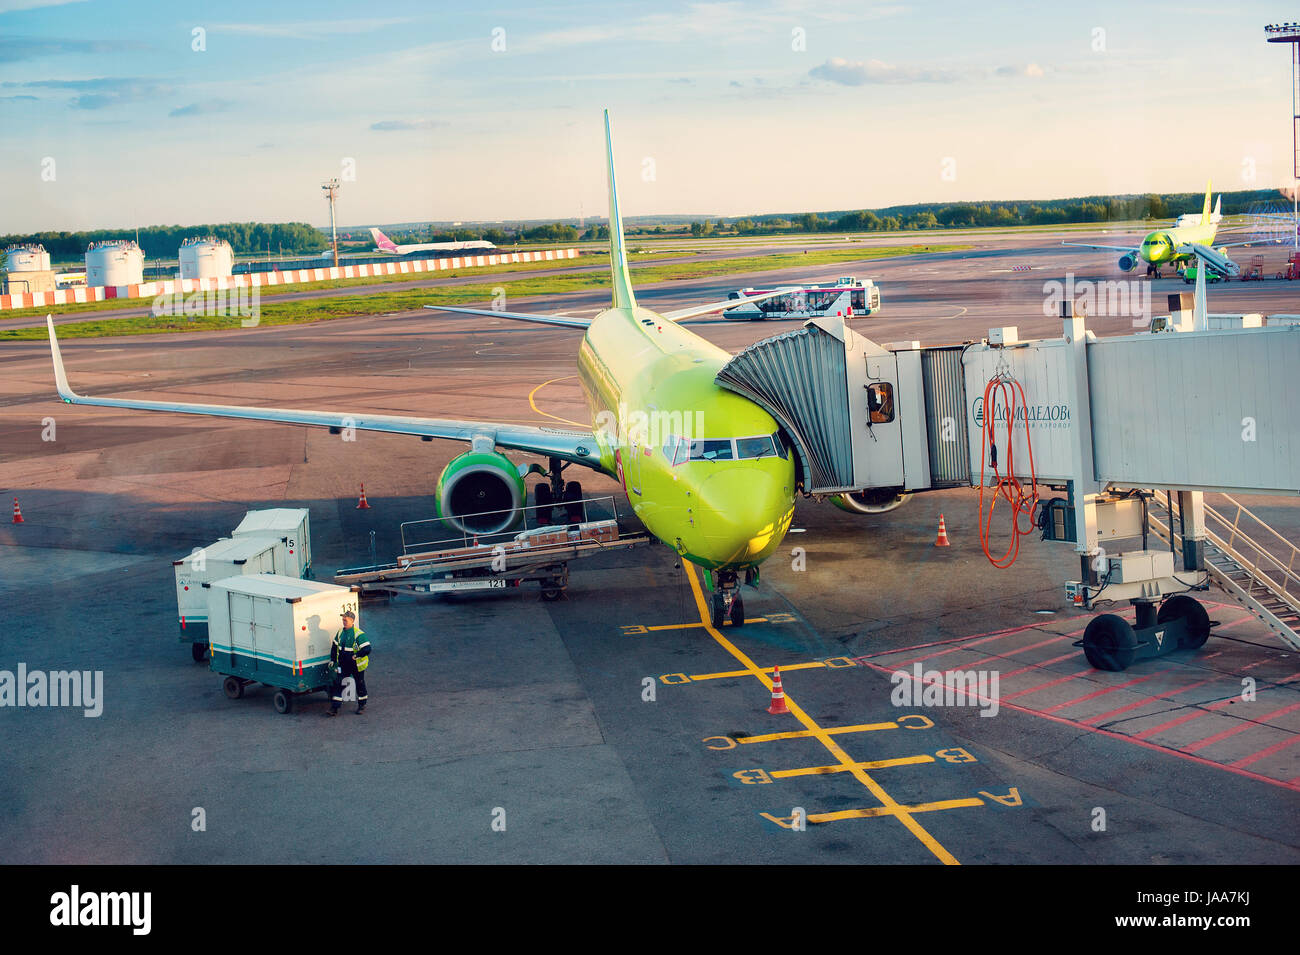 DOMODEDOVO AIRPORT DME , RUSSIA - May 28, 2017: Domodedovo airport on May 28, 2017 in Moscow, Russia. Domodedovo - Stock Image